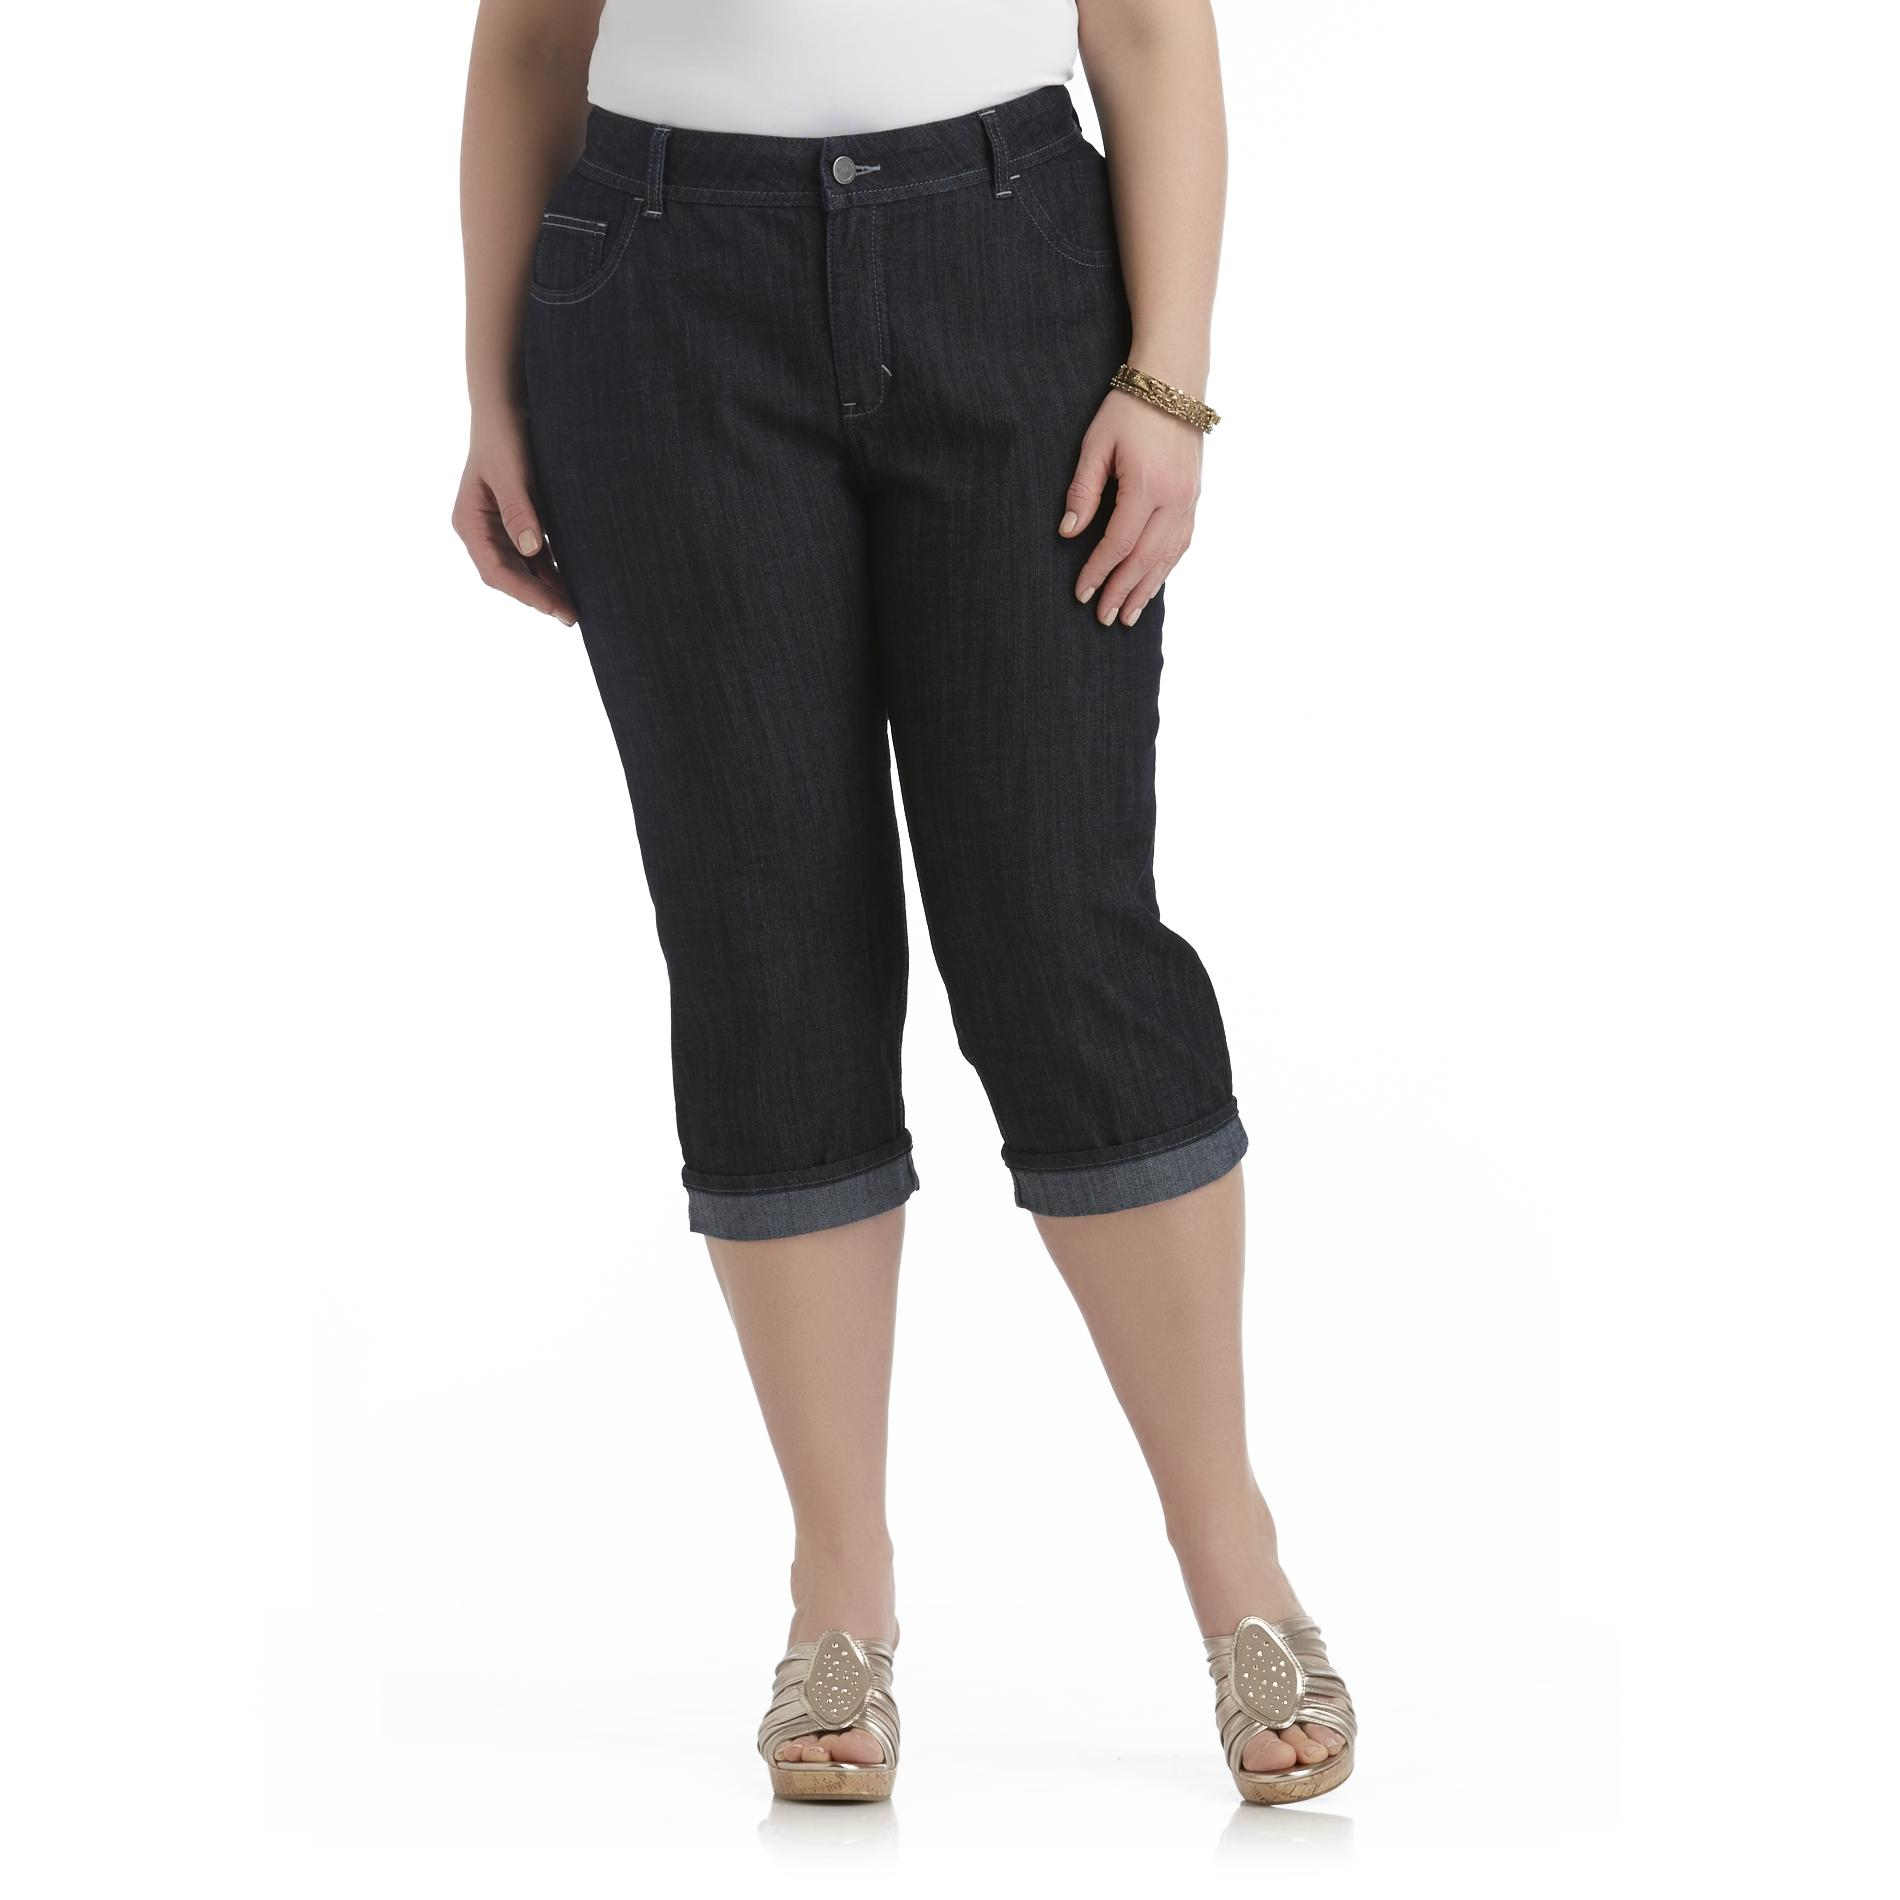 Riders by Lee Women's Plus Slender Stretch Embellished Capris at Kmart.com